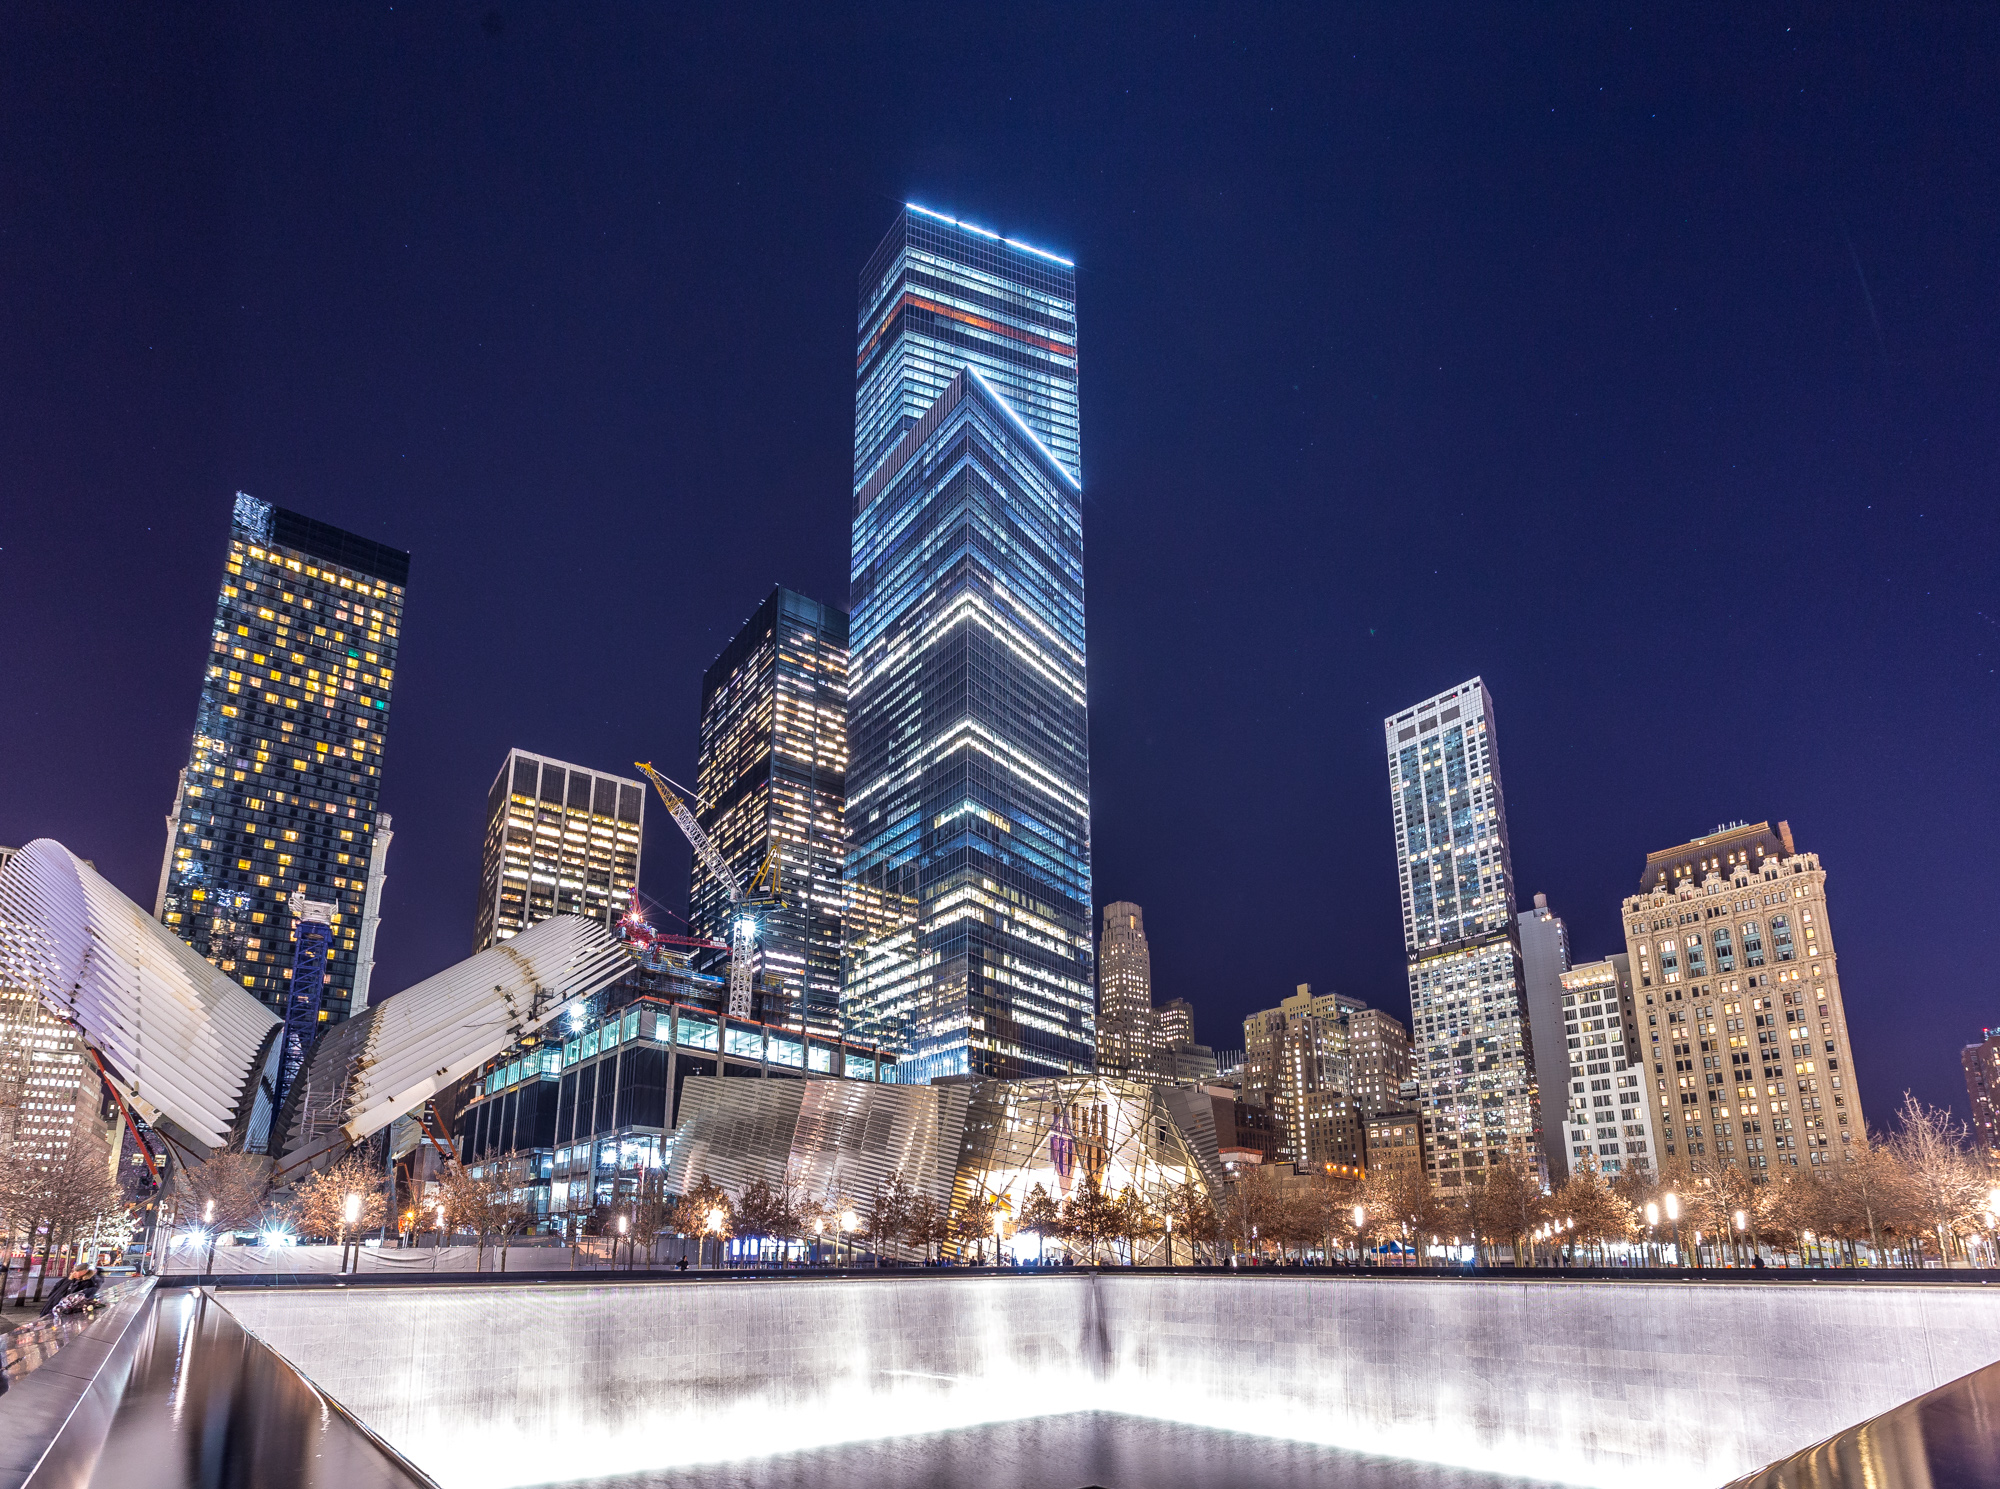 The skyscrapers and buildings at the World Trade Center site. In the foreground is a large memorial fountain.